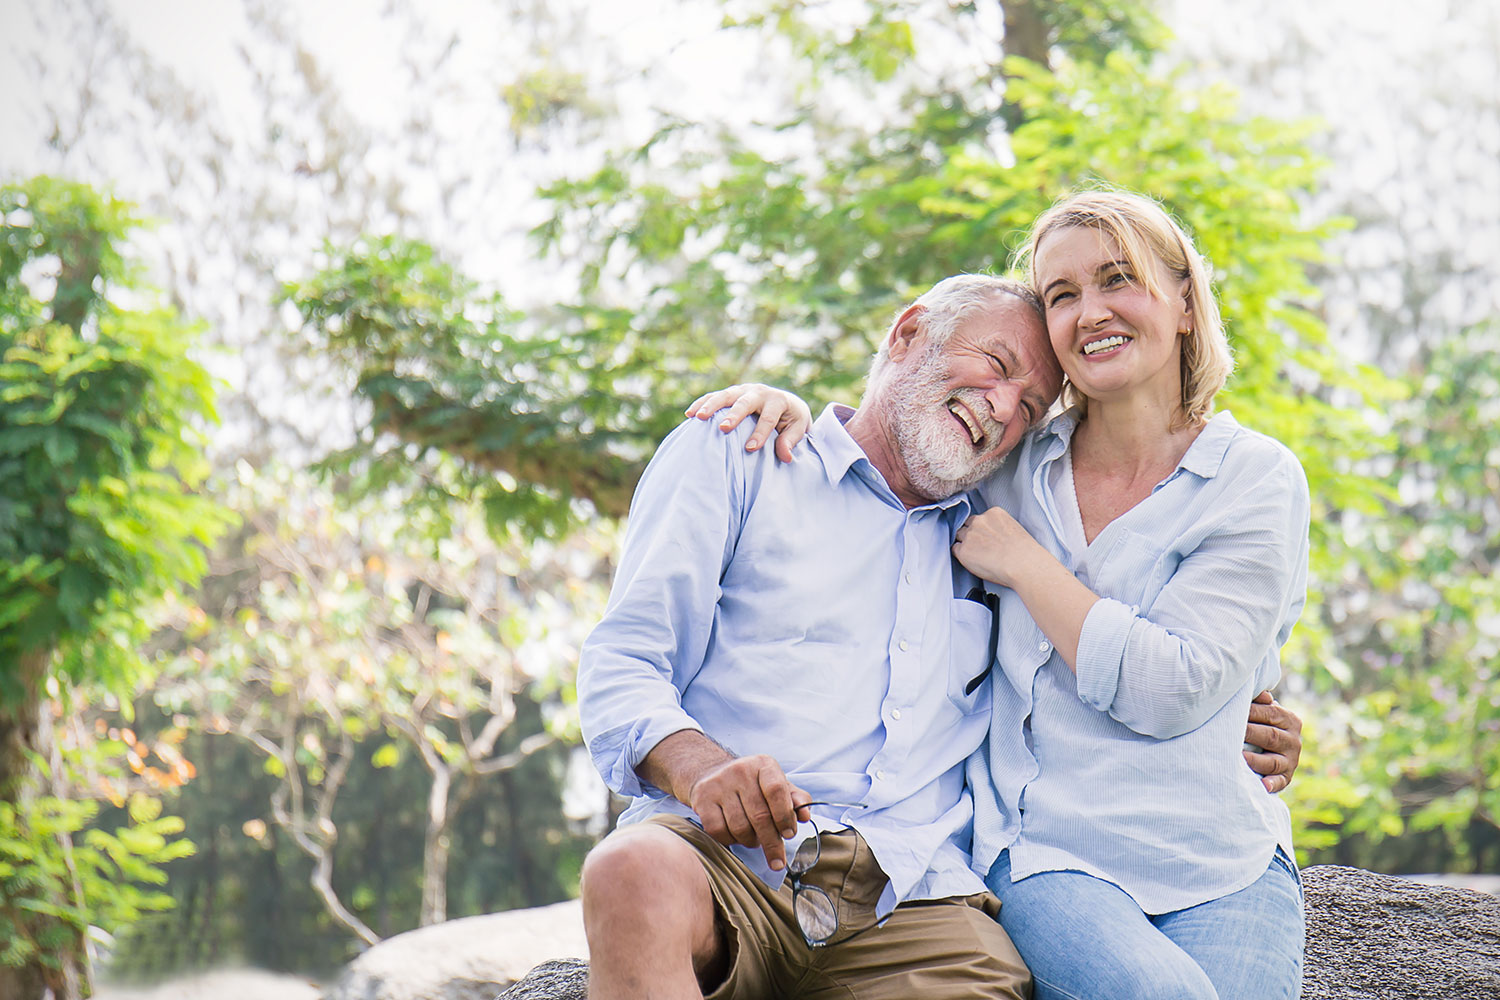 older couple hugging and smiling in front of trees